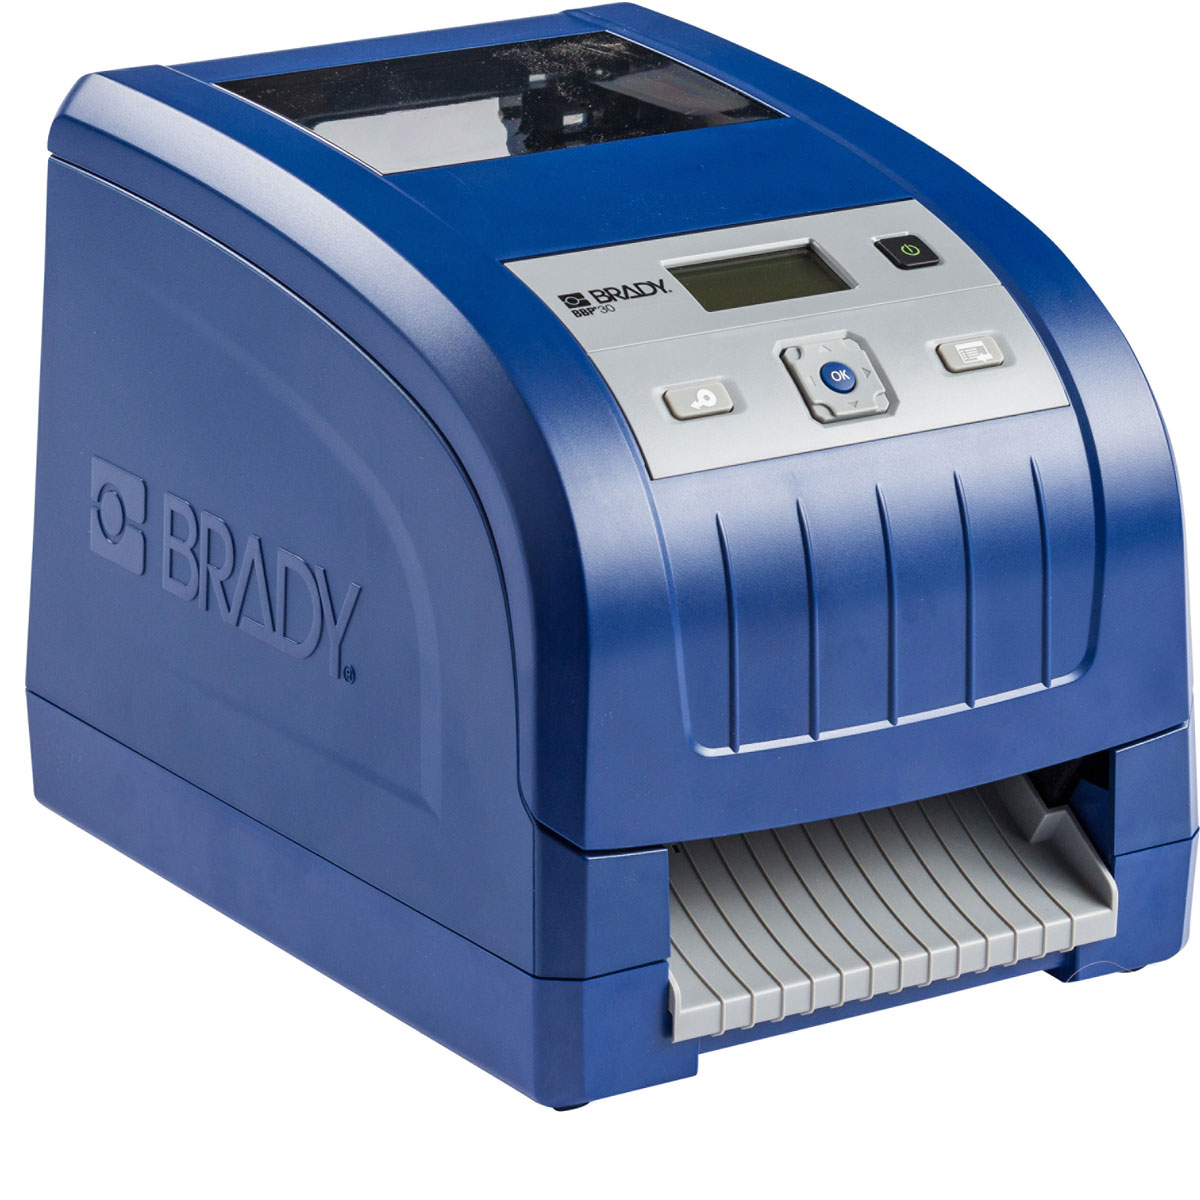 BBP30 Label Printer